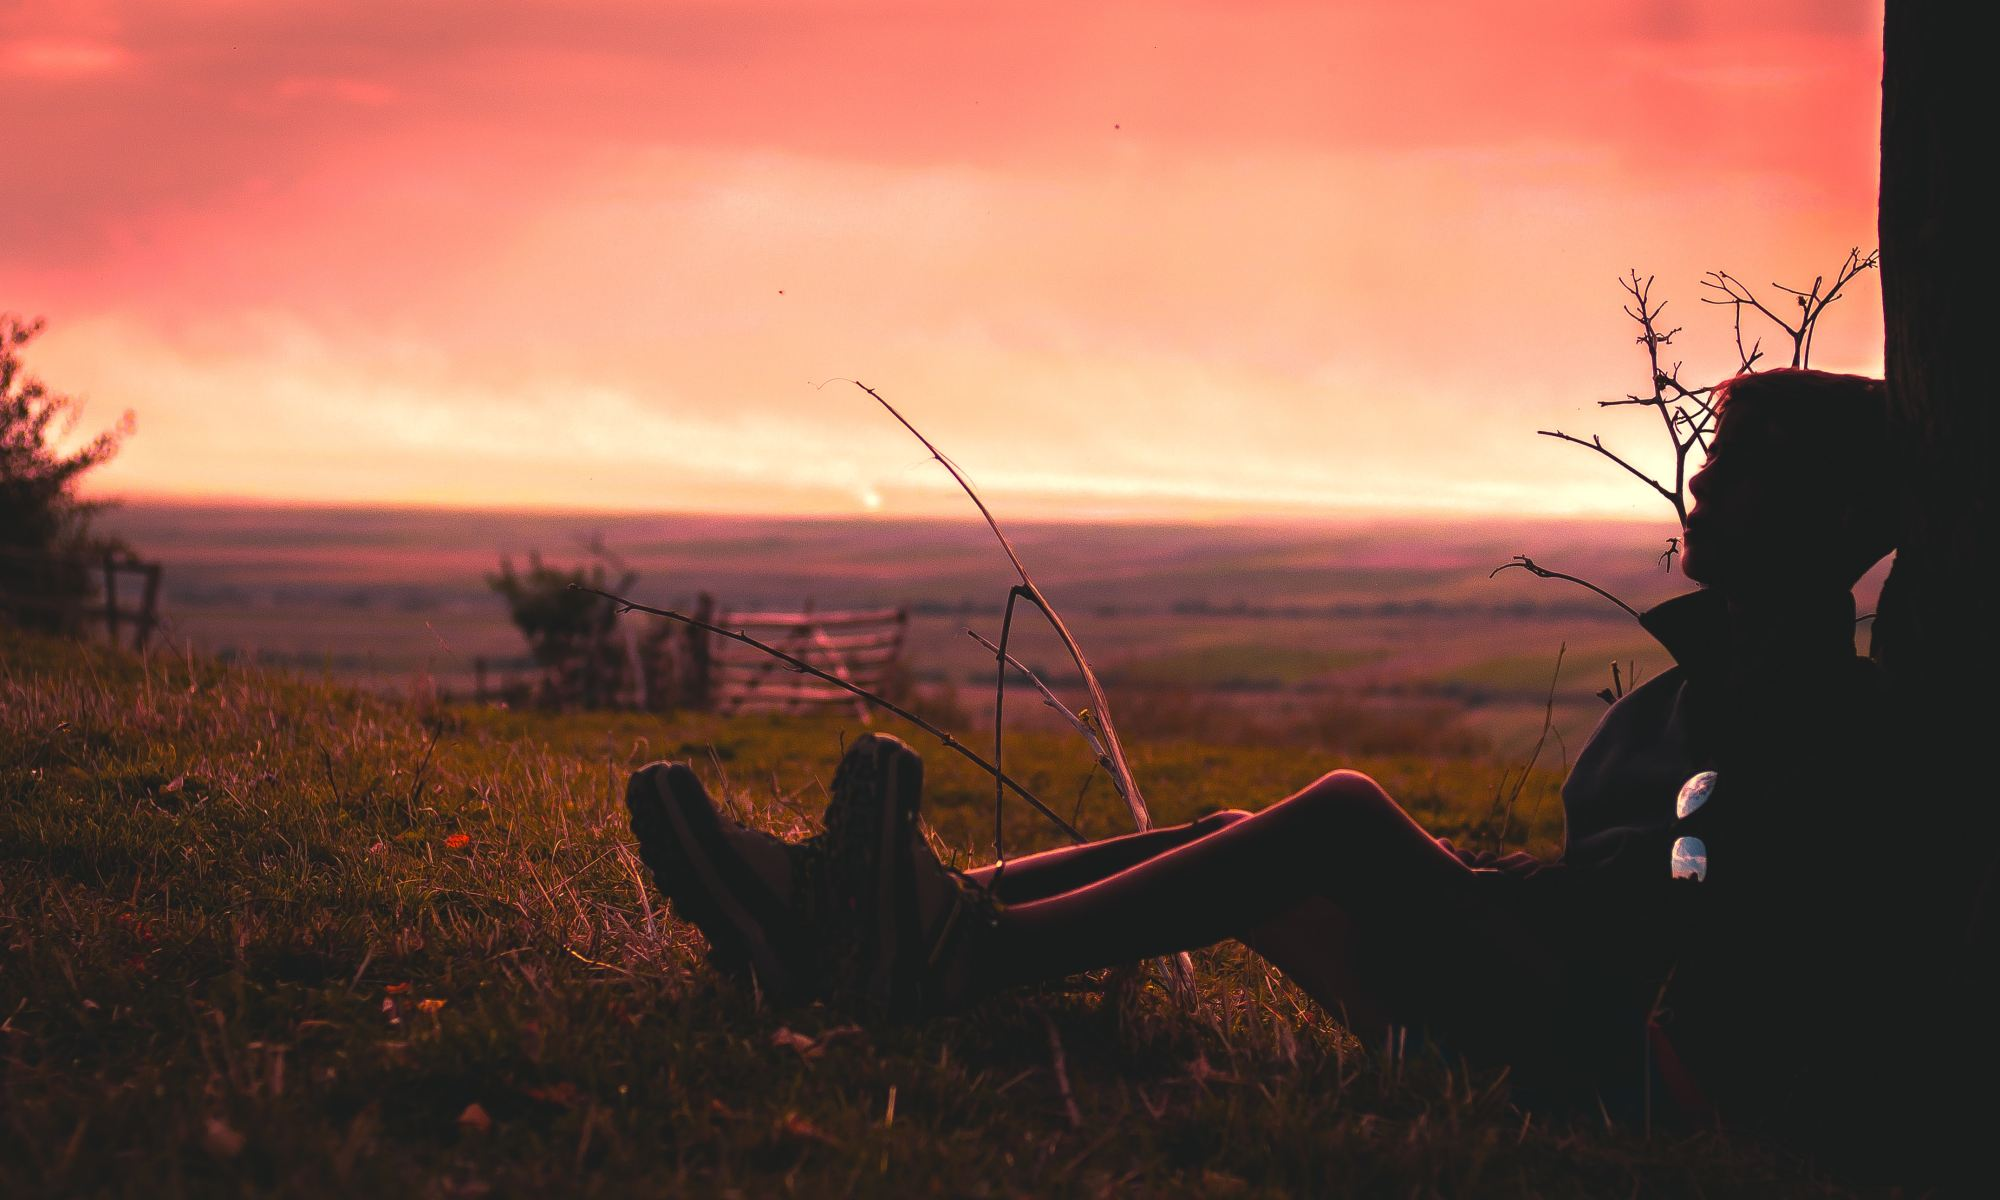 Silhouette of man with schizoid personality disorder sitting on grass during golden hour